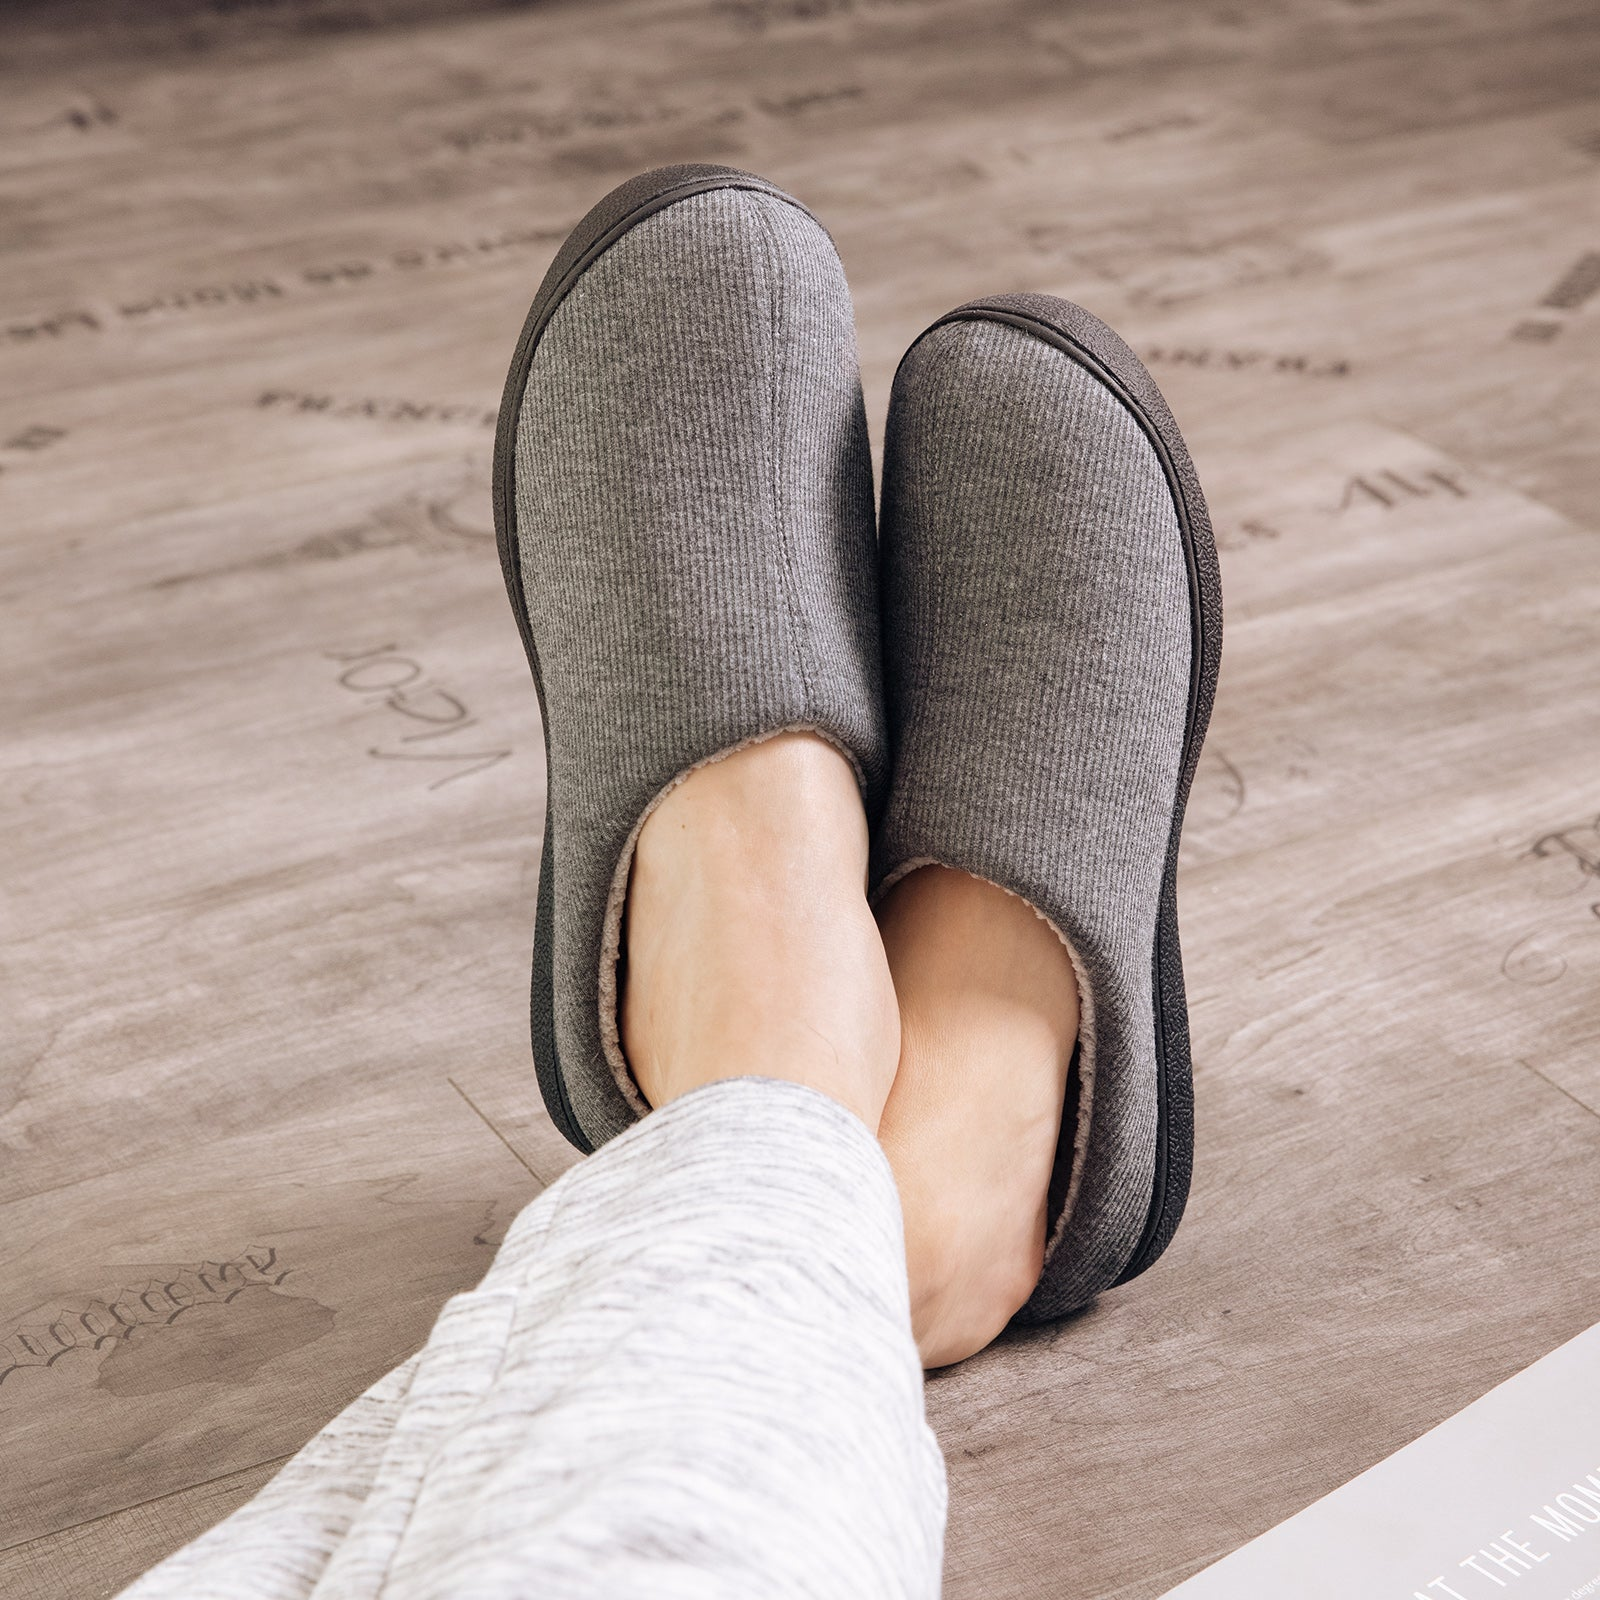 EverFoams Mens' Vere Slippers with Memory Foam